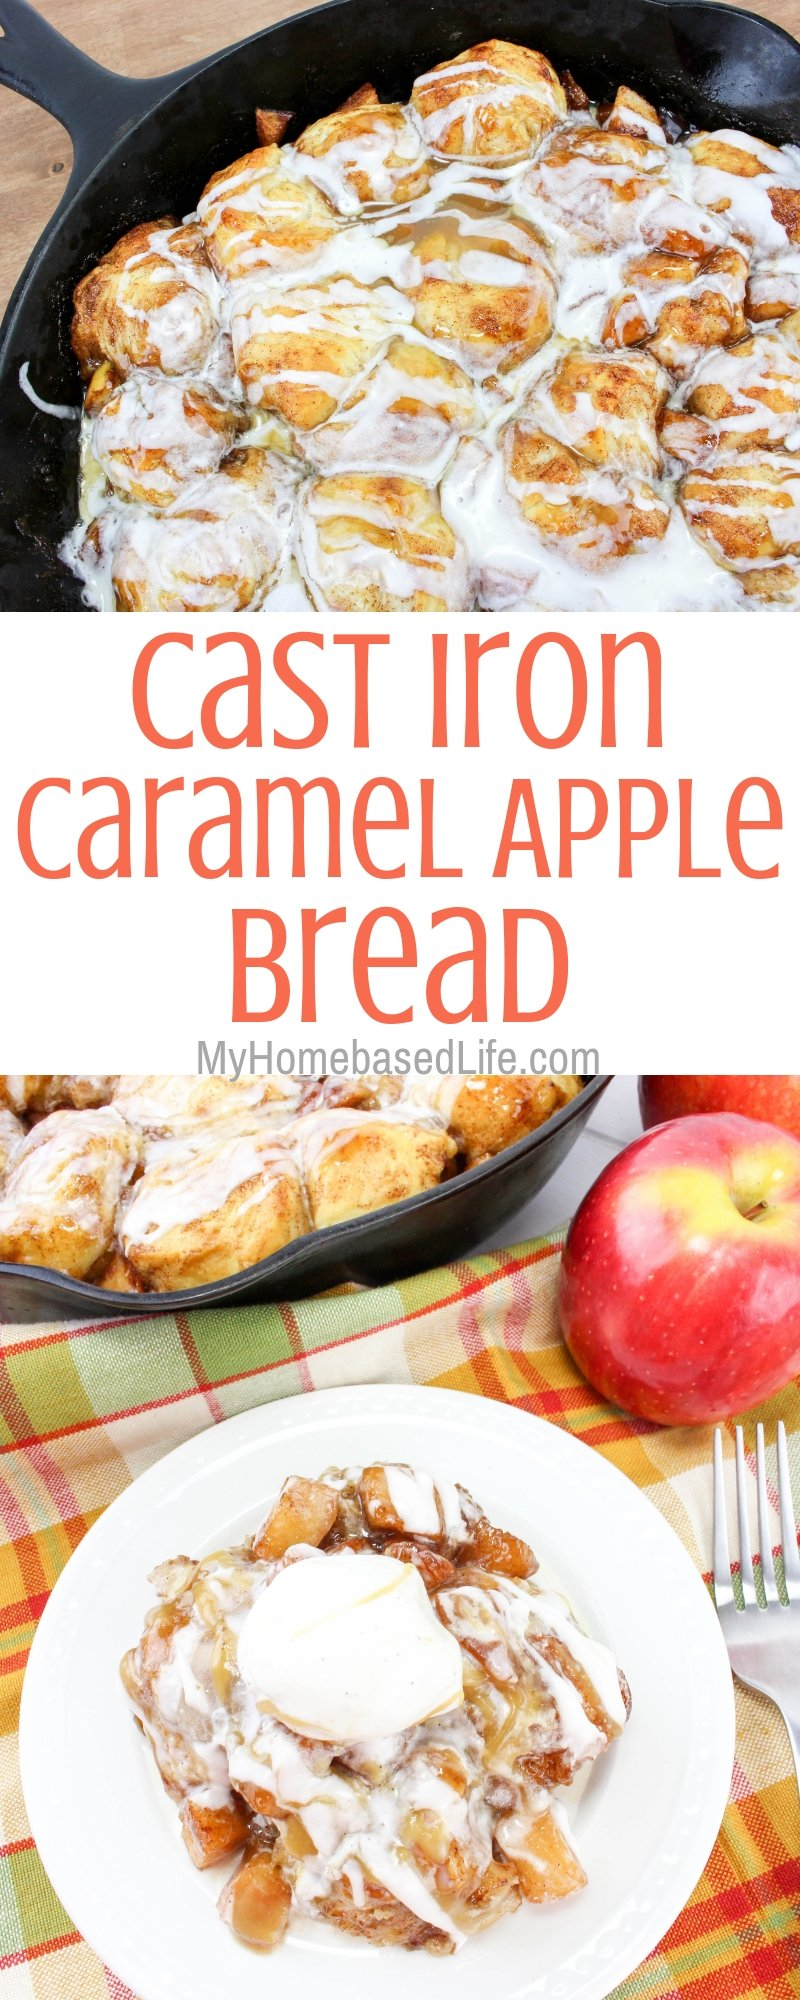 This Caramel Apple Pull-Apart Bread recipe is an all-time favorite around here. Caramel Apple recipes are a big hit every year and this one is delicious. #caramelapplerecipes #castironrecipes #myhomebasedlife #pullapartbreadrecipe #desserts | Dessert Recipes | Cast Iron Recipes | Caramel Apple Recipes | Dessert Bread Recipes